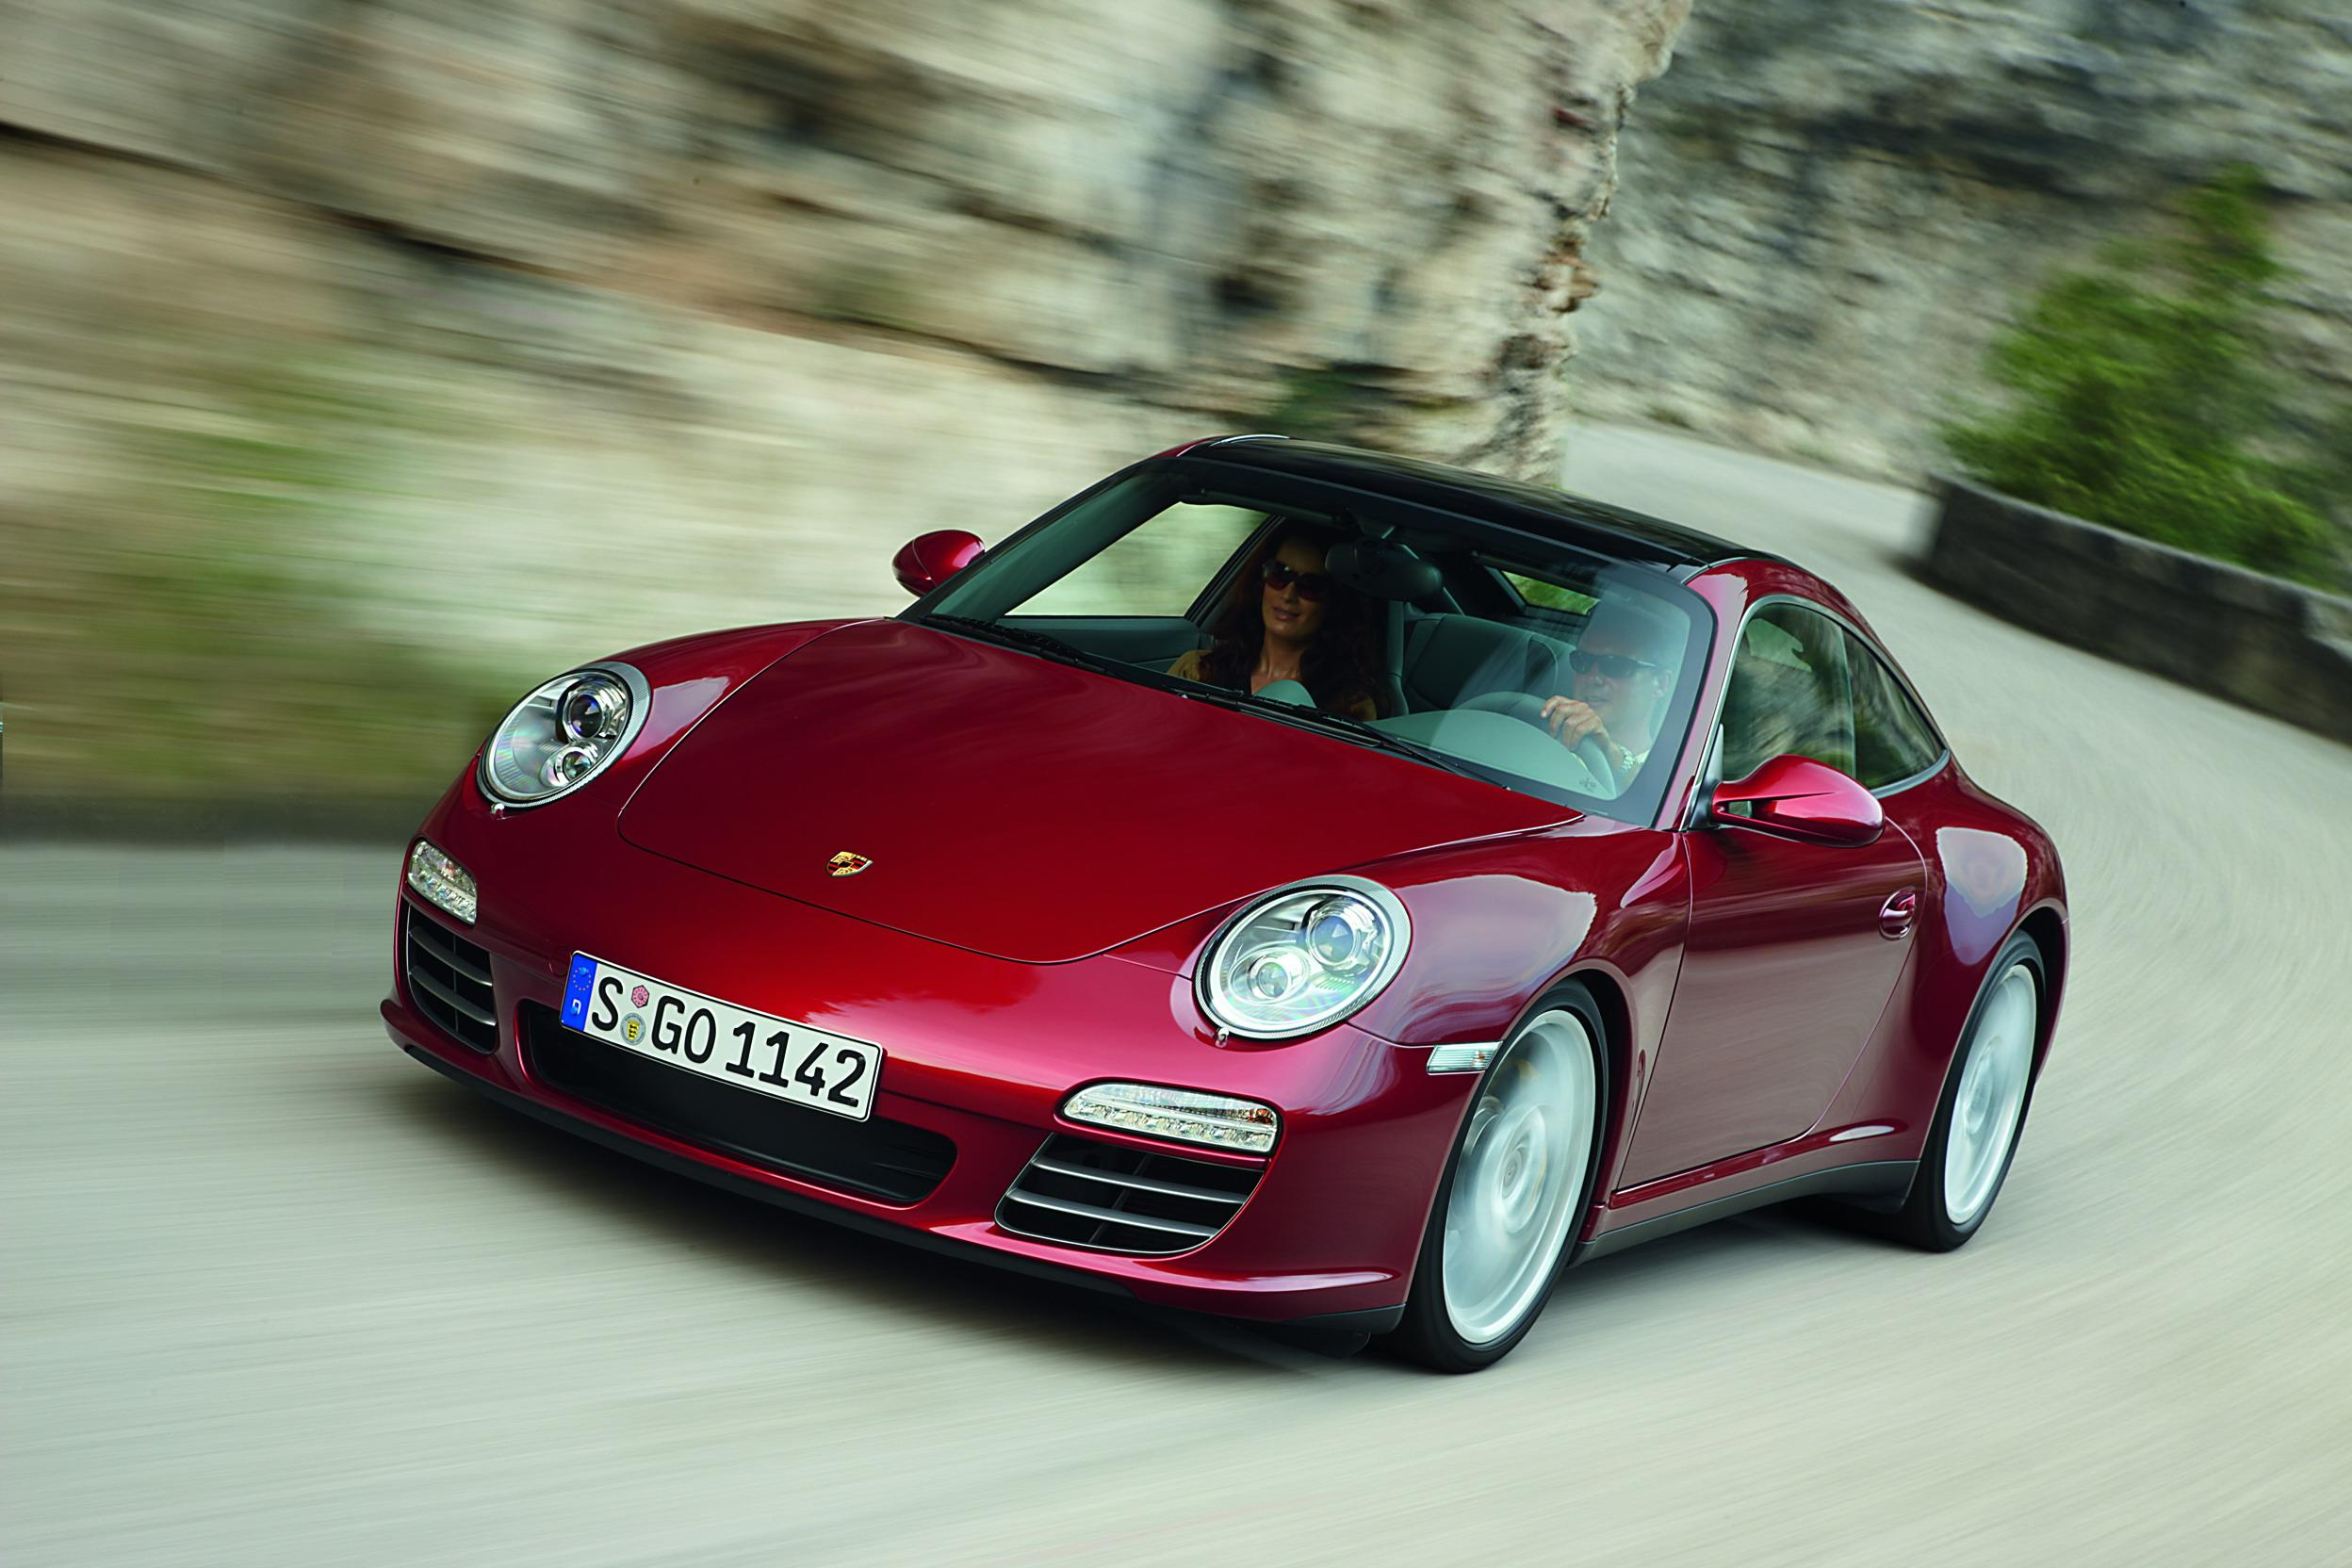 2009 2010 Porsche 911 Targa 4 And 4s Top Speed